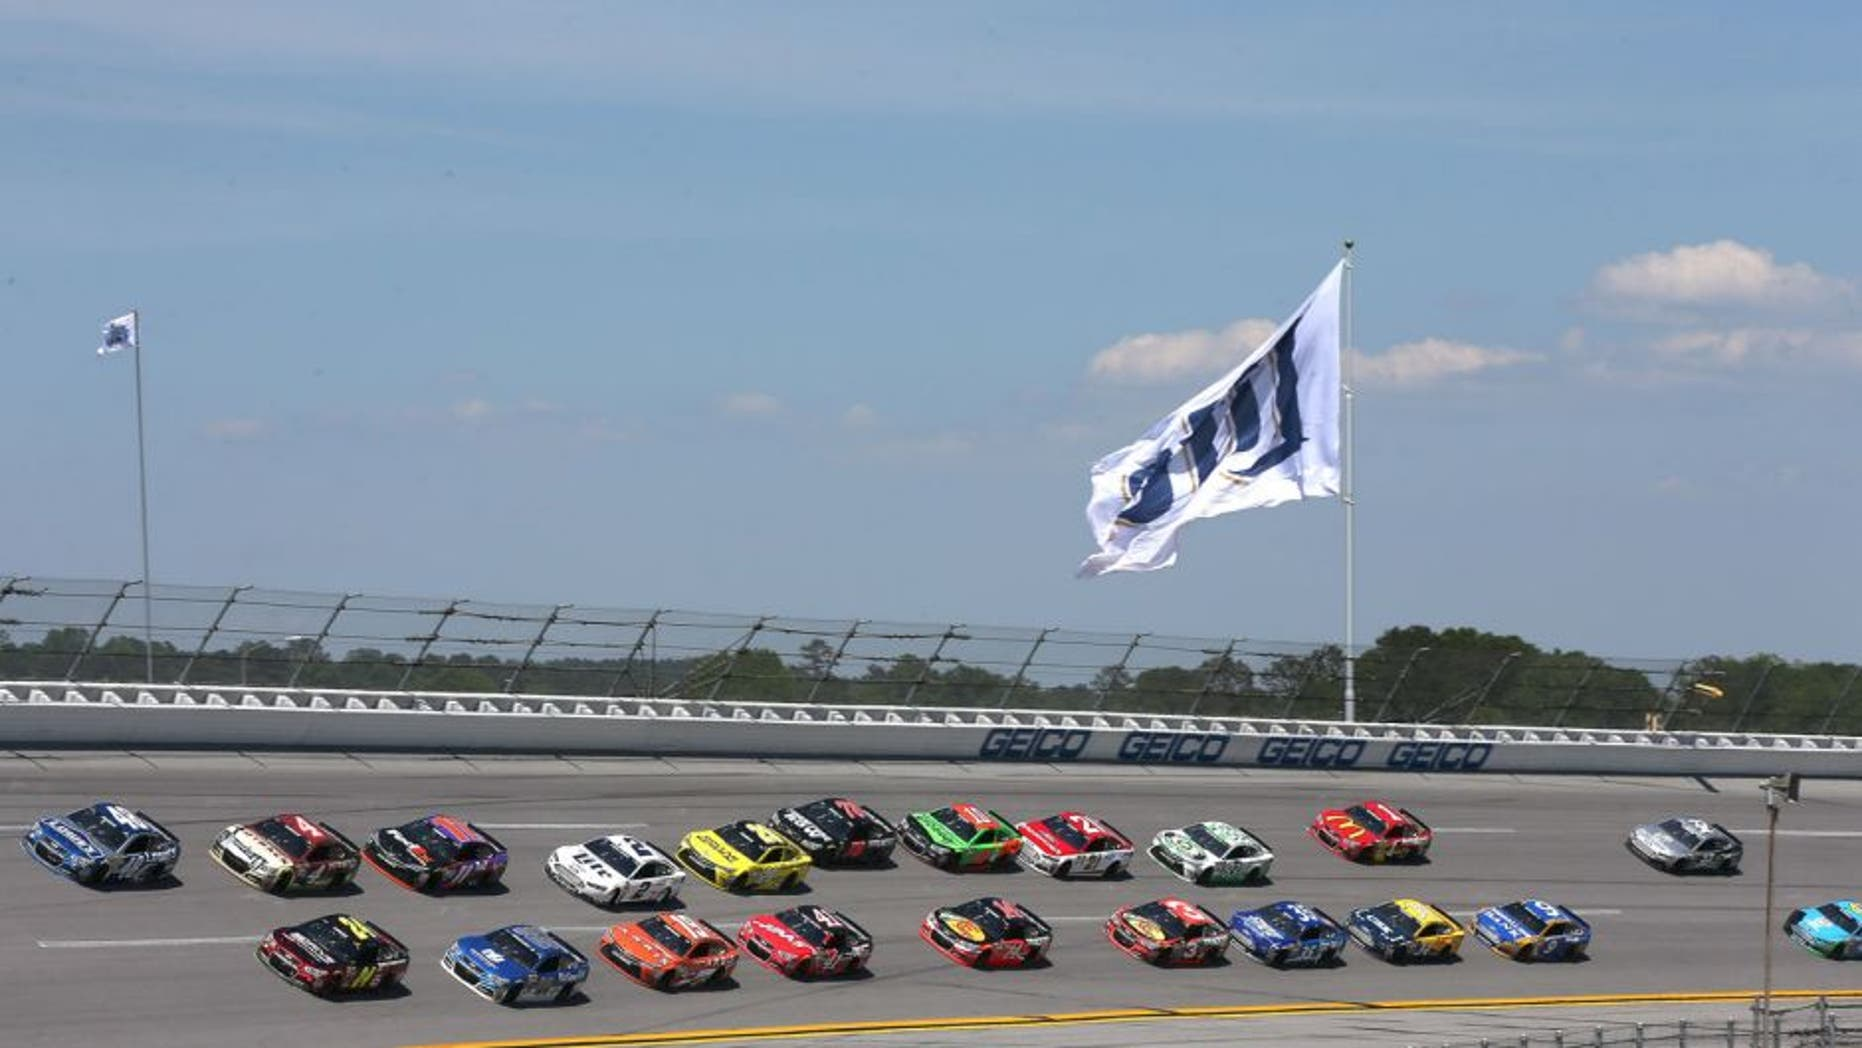 Jimmie Johnson, driver of the #48 Lowe's Chevrolet, and Jeff Gordon, driver of the #24 Drive To End Hunger Chevrolet, lead the field during the NASCAR Sprint Cup Series GEICO 500 at Talladega Superspeedway on May 3, 2015 in Talladega, Alabama.